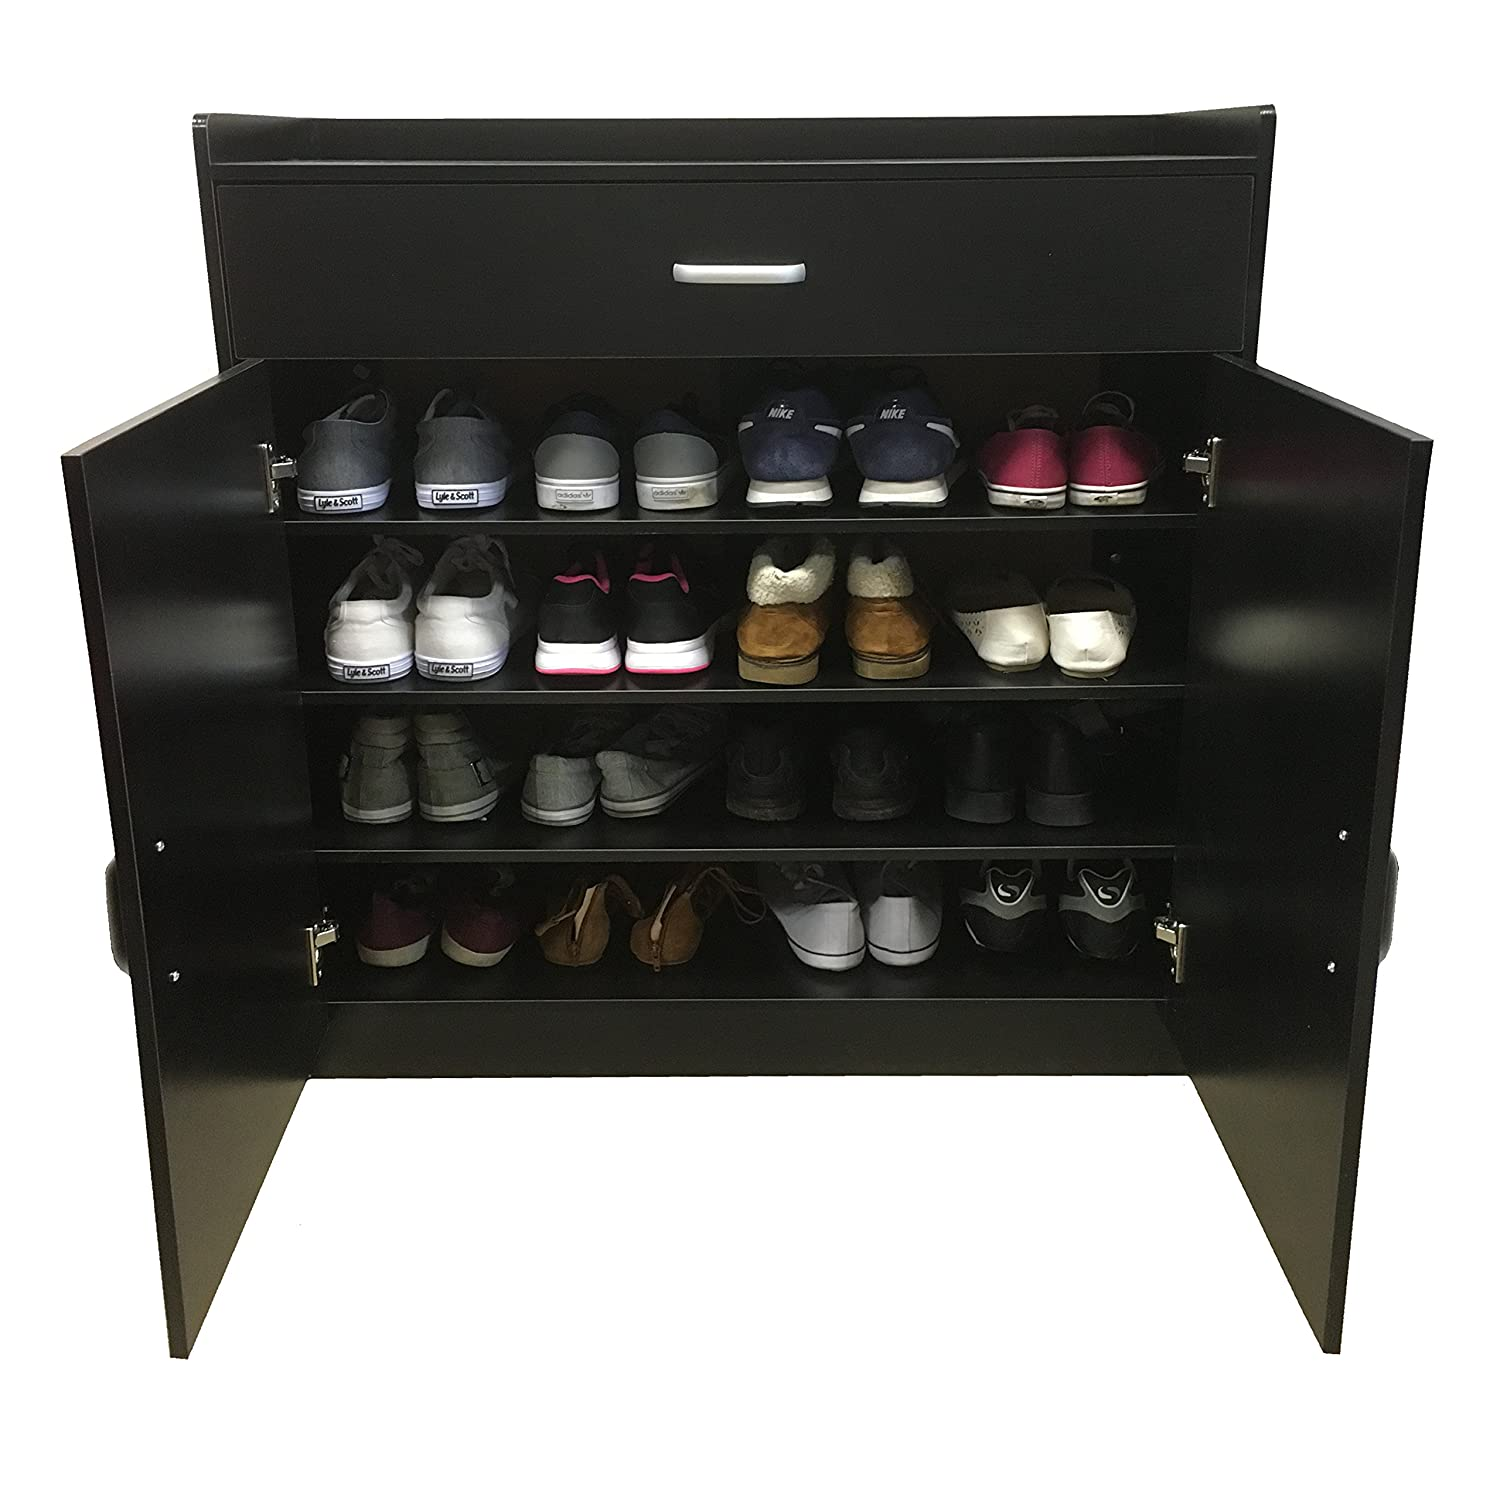 Ordinaire Redstone Black White Or Beech Shoe Storage Cabinet Rack Cupboard   4  Shelves + 1 Drawer   Wooden Sideboard (Black): Amazon.co.uk: Kitchen U0026 Home